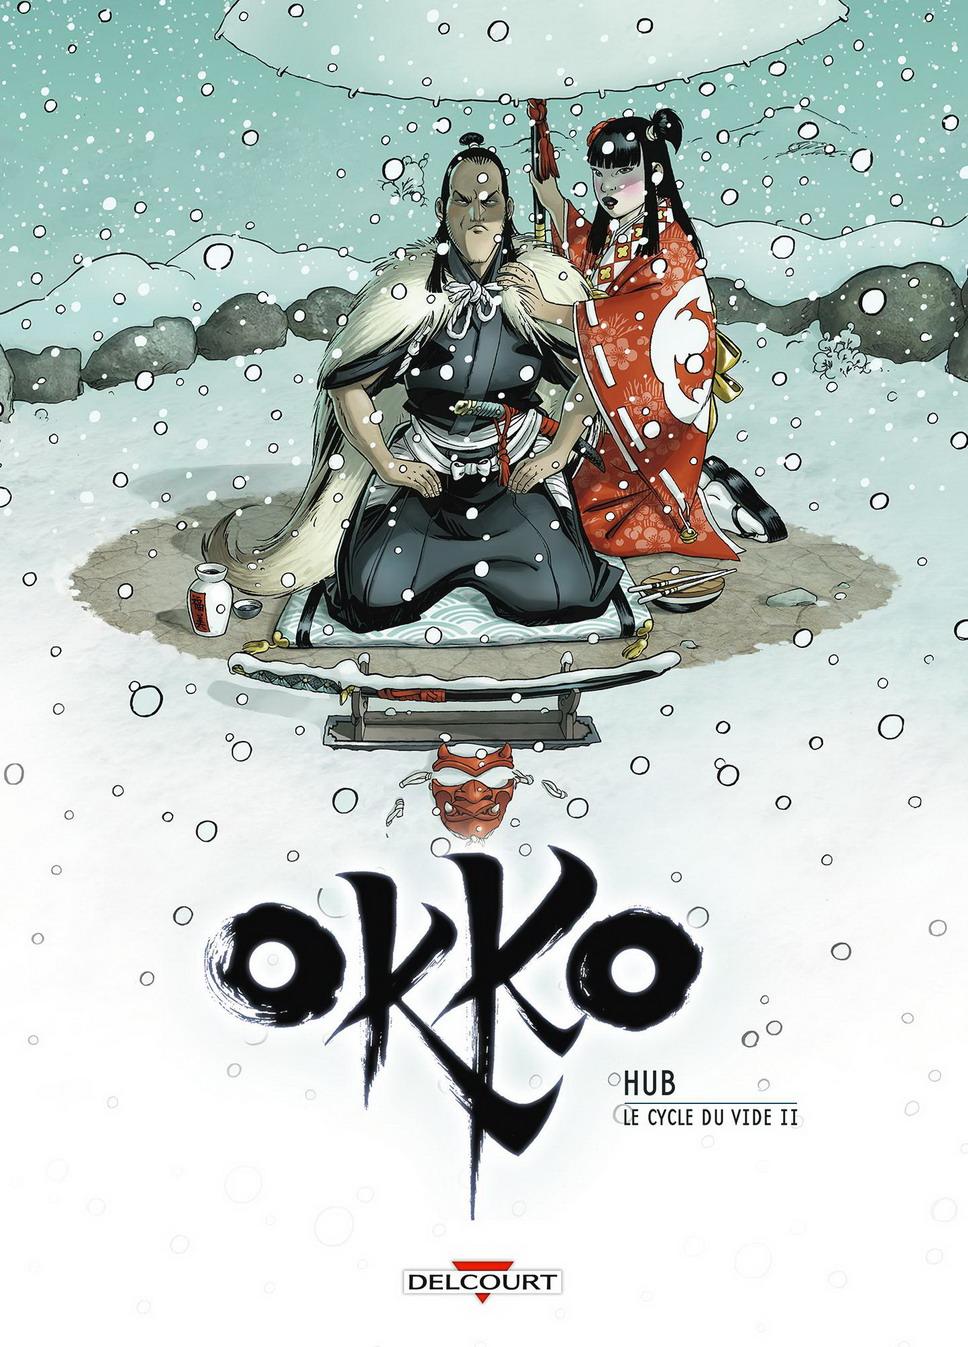 Couverture BD Okko T10, Le cycle du vide (2/2)